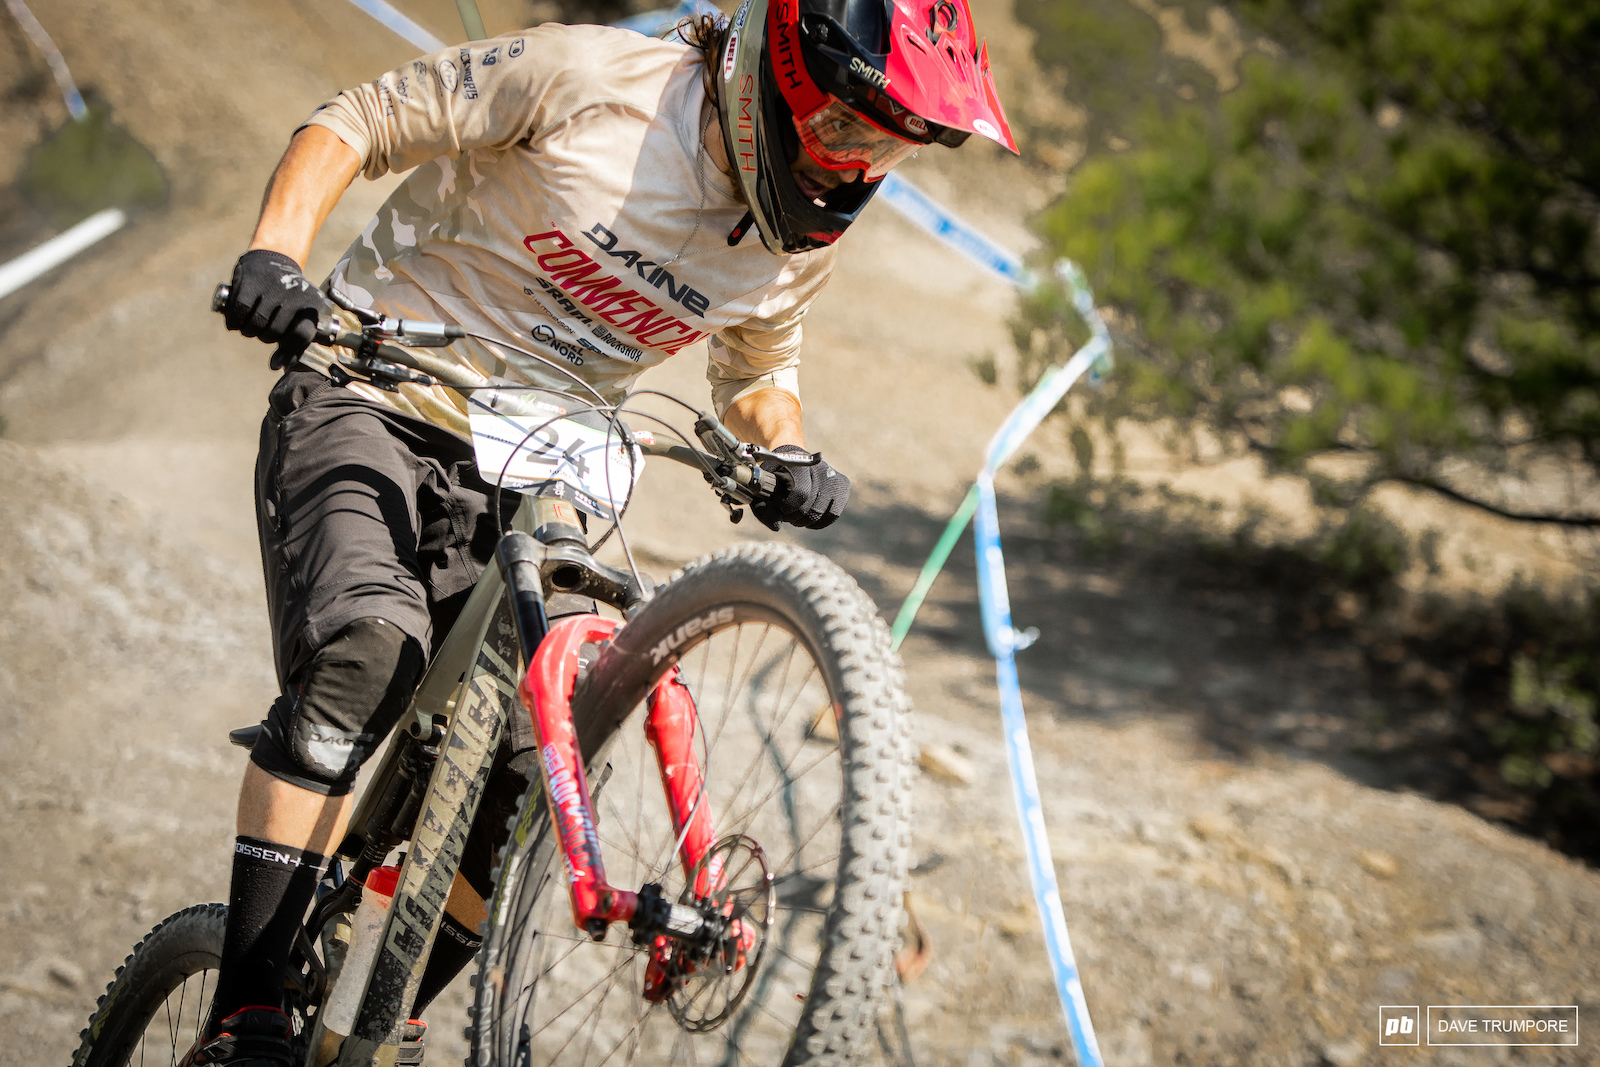 The last time the EWS stopped in Ainsa Yoann Barelli walked away with a second place trophy.